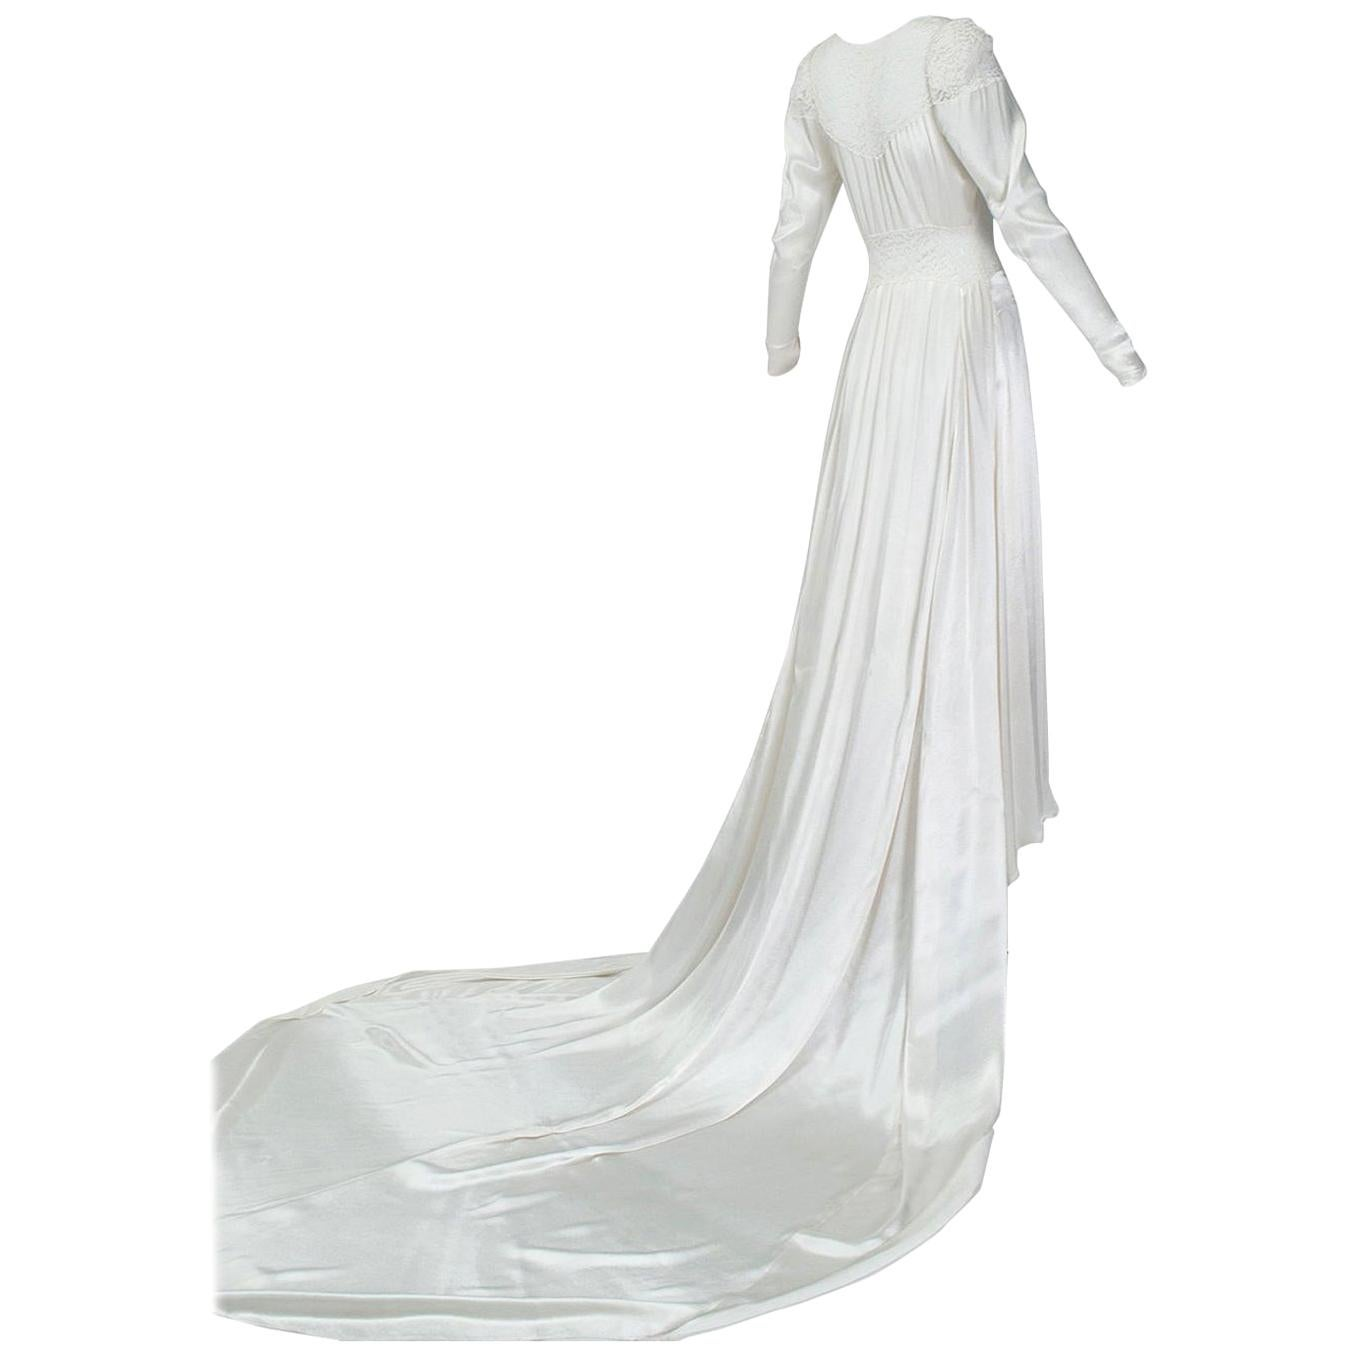 White Hollywood Regency Illusion Wedding Gown with Cathedral Train - XS, 1930s